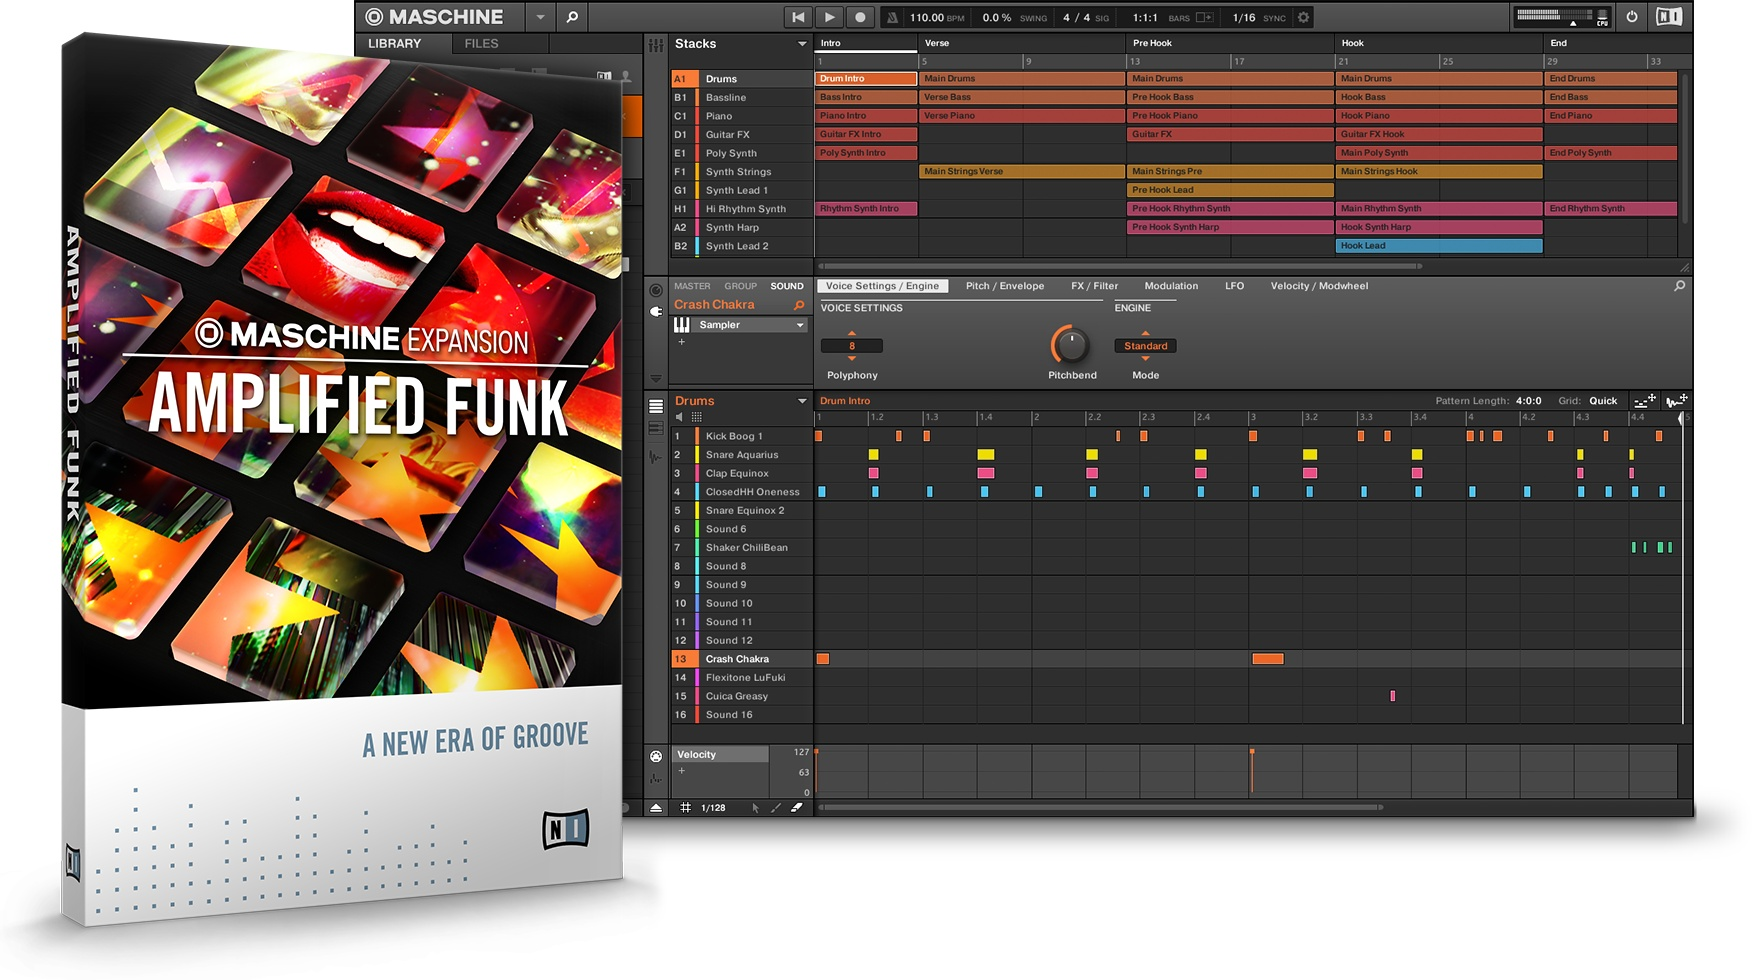 Native Instruments Maschine Expansion Amplified Funk v1.0.0 HYBRID